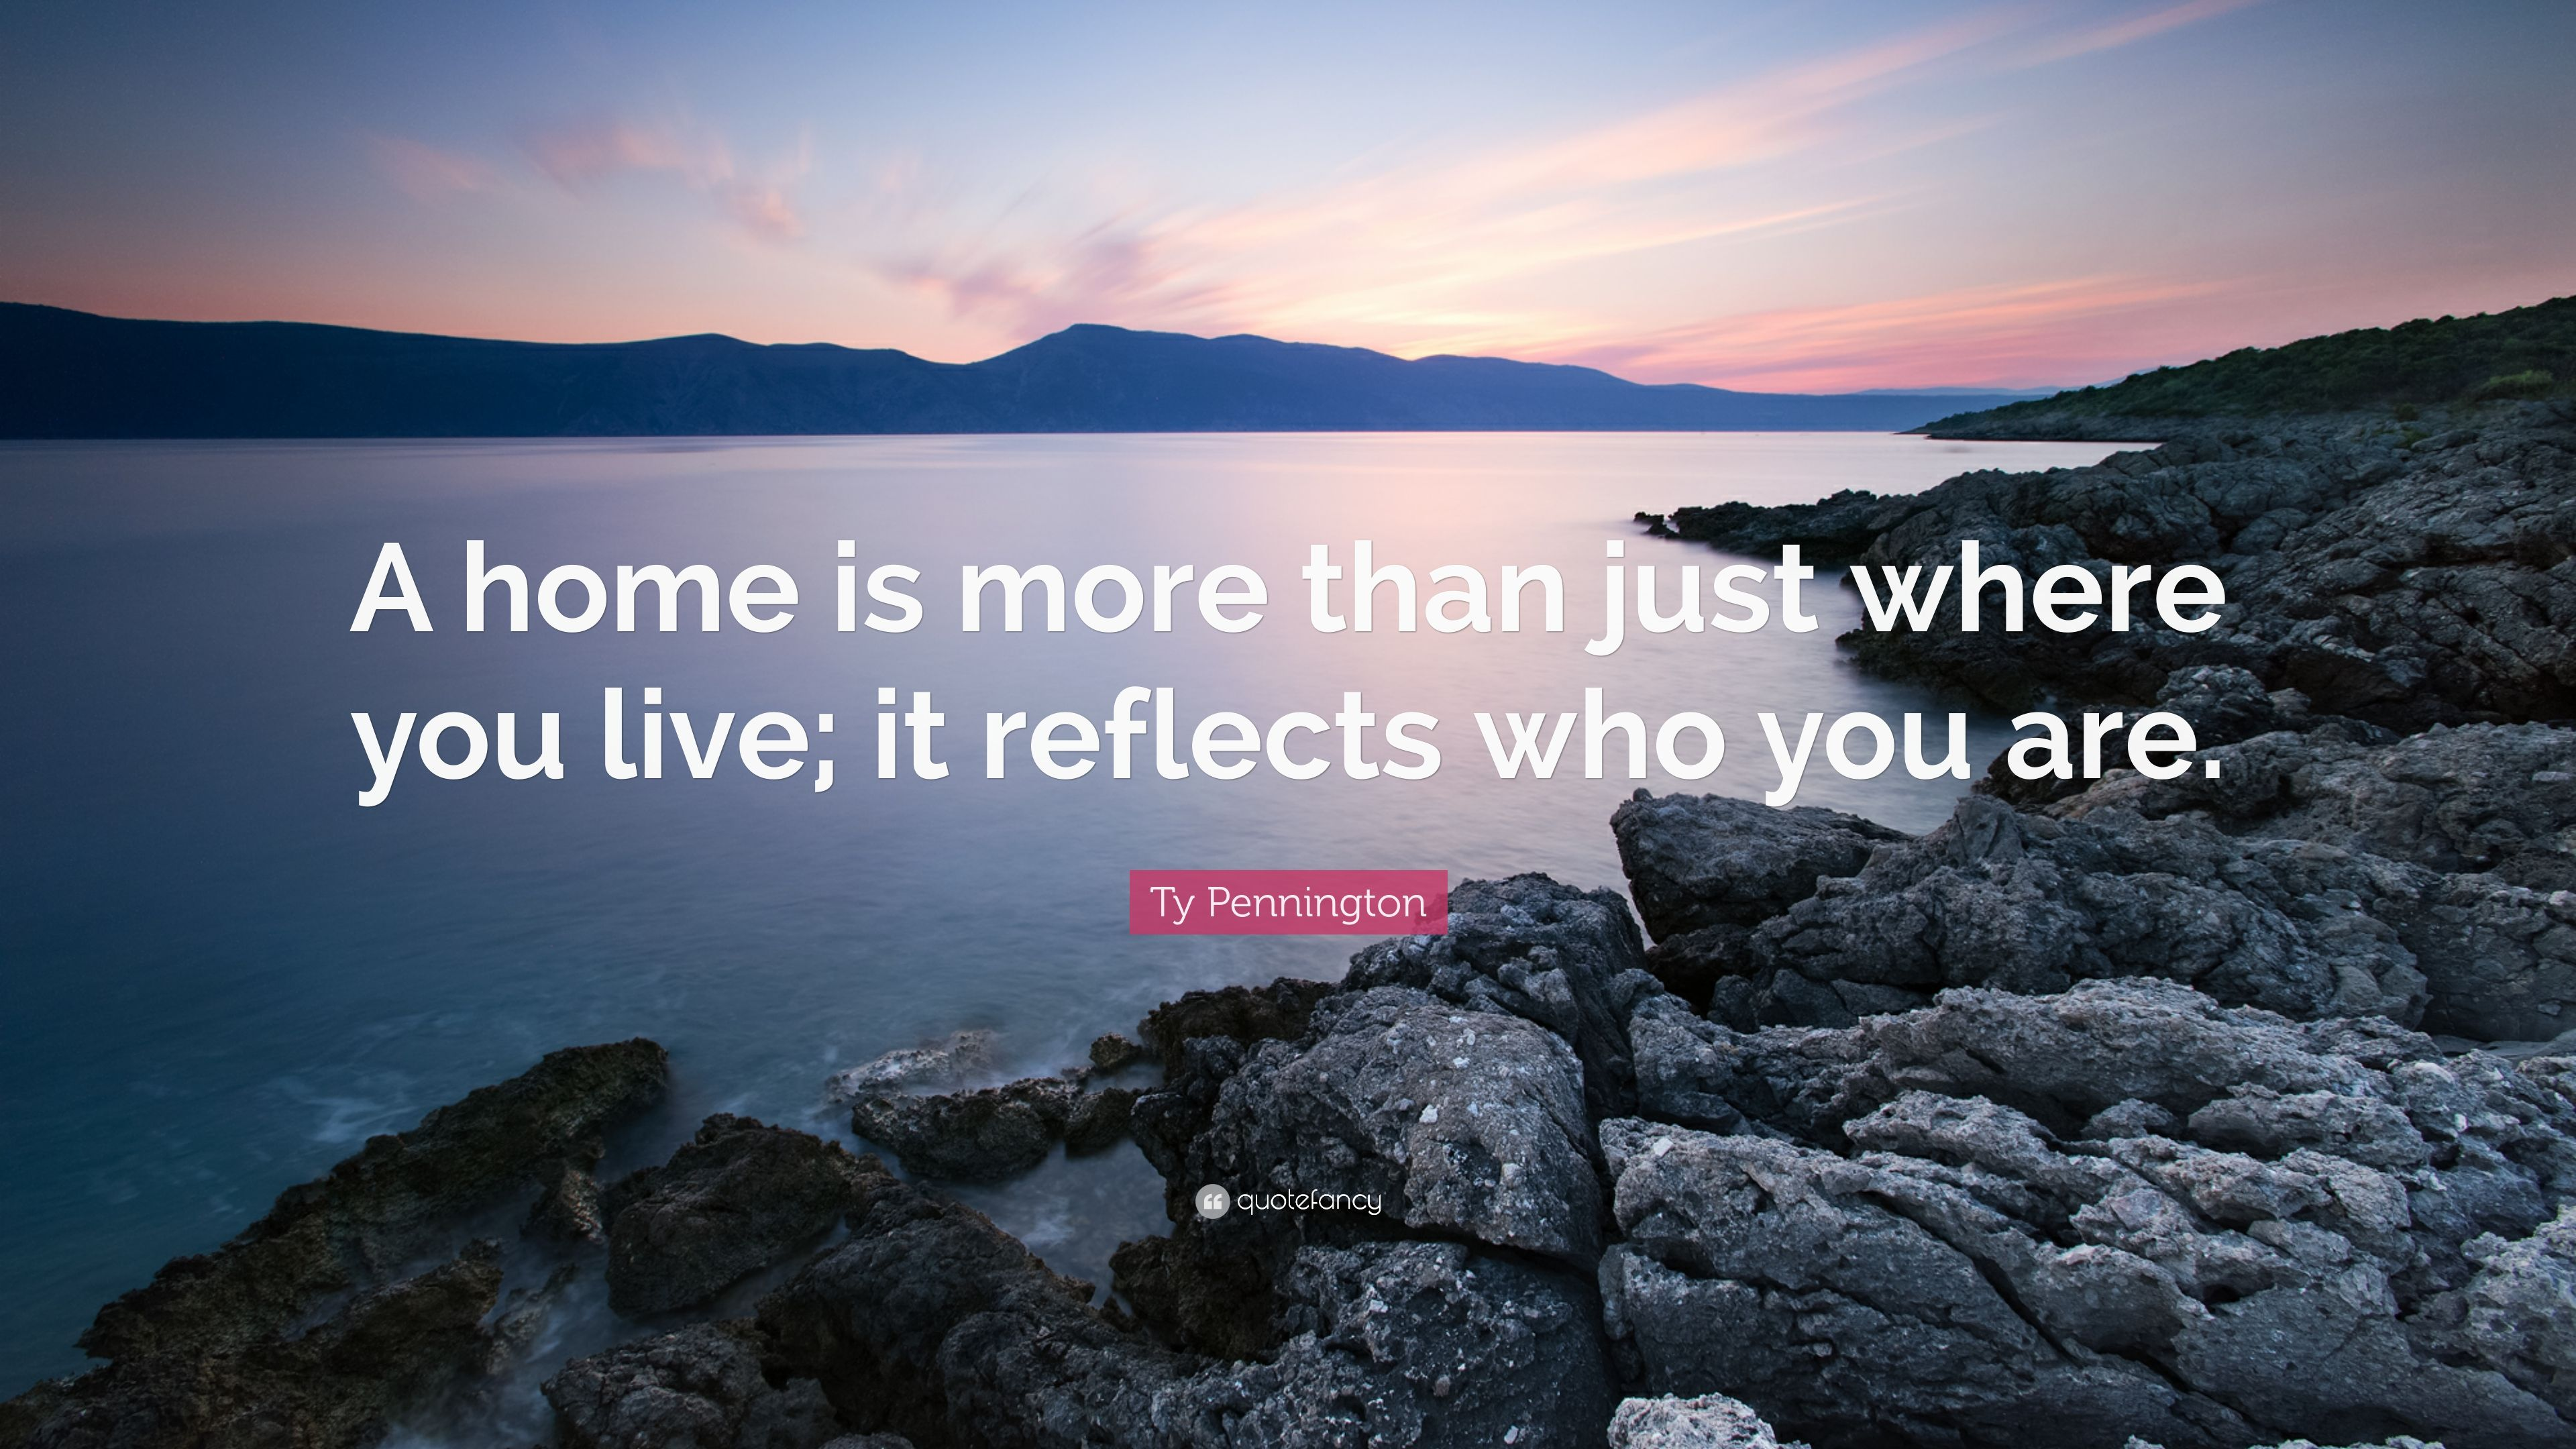 Ty Pennington Quote A Home Is More Than Just Where You Live It Reflects Who You Are 7 Wallpapers Quotefancy